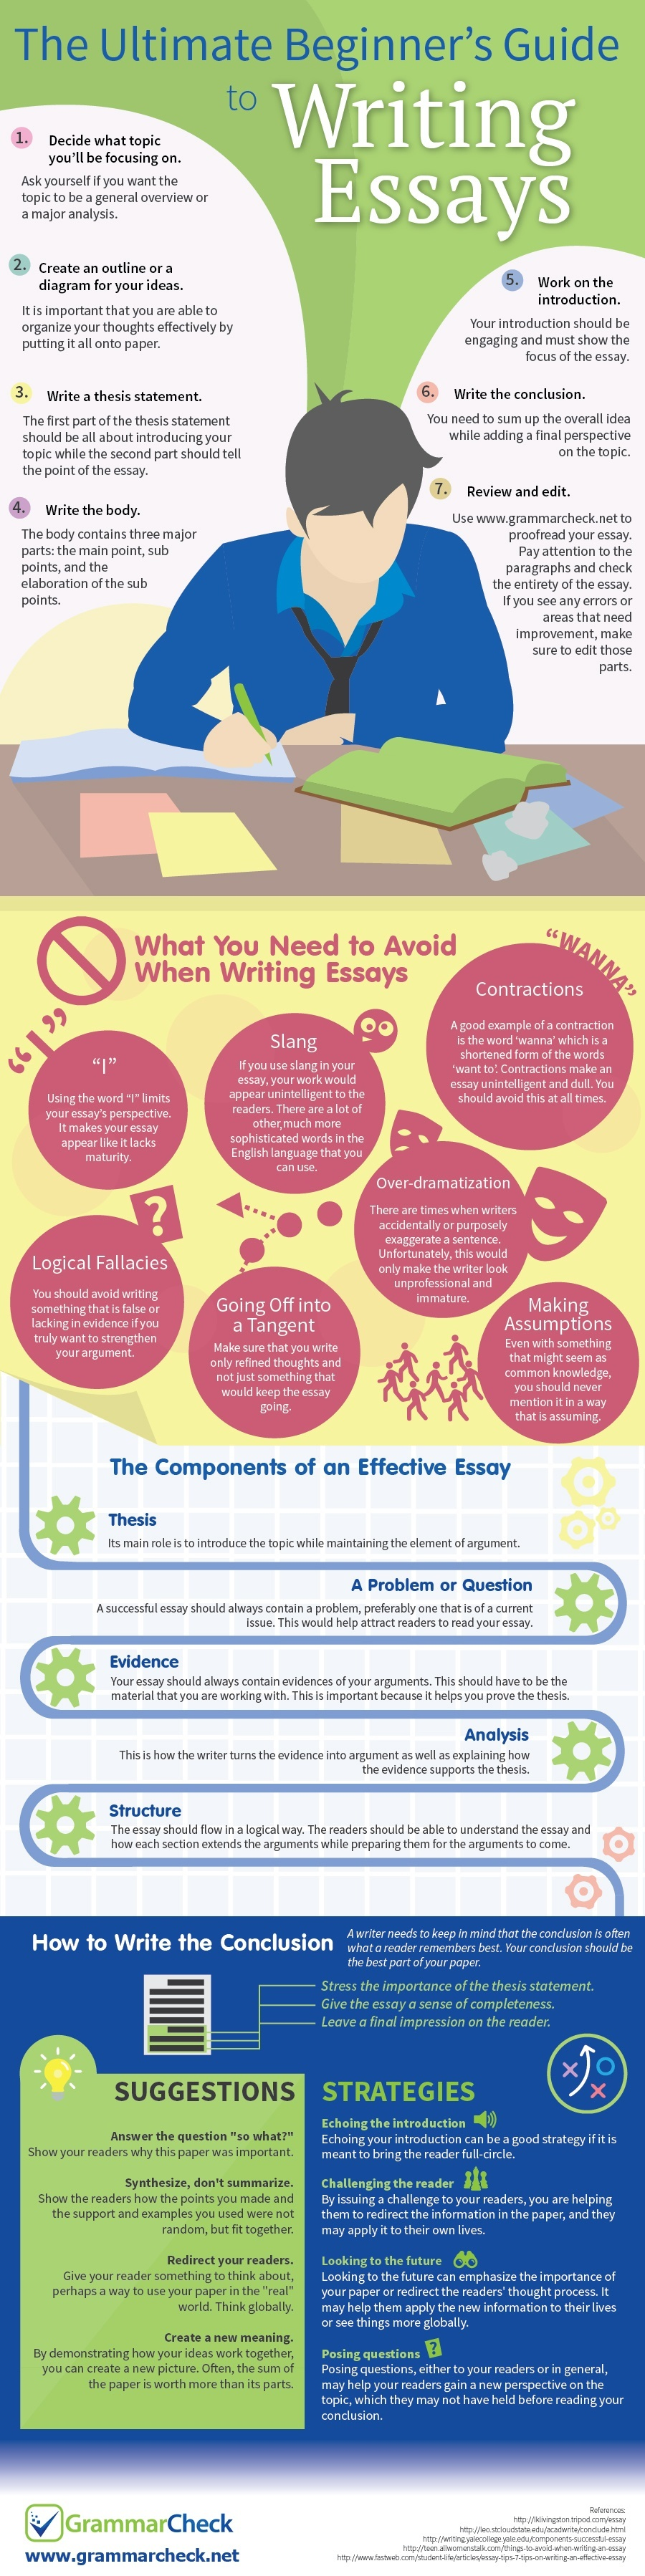 What essay writing contest can I enter to win a free international trip?